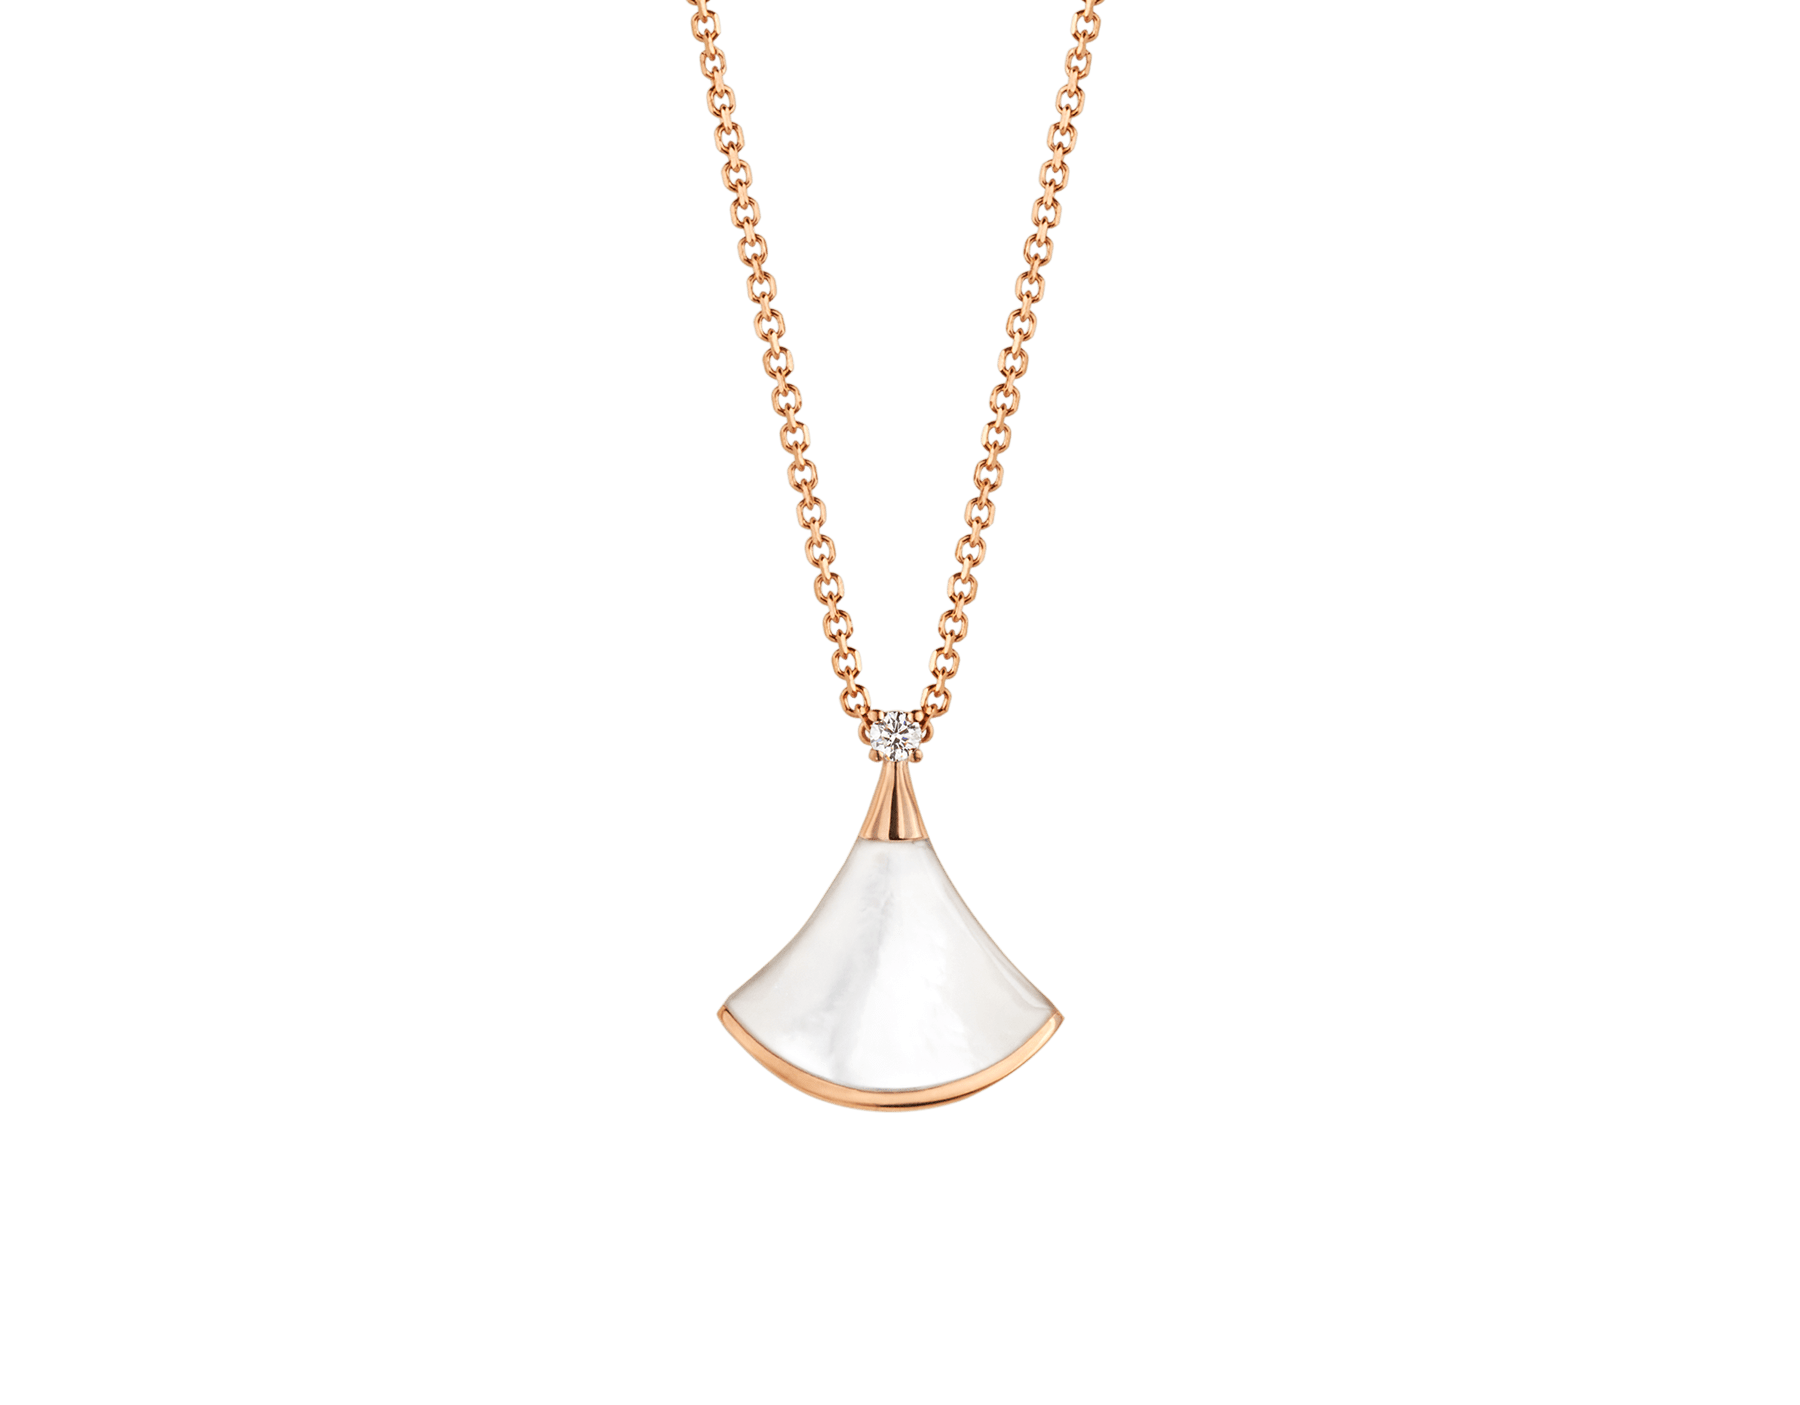 DIVAS' DREAM necklace in 18 kt rose gold with 18 kt rose gold pendant set with one diamond and mother-of-pearl. 350581 image 1